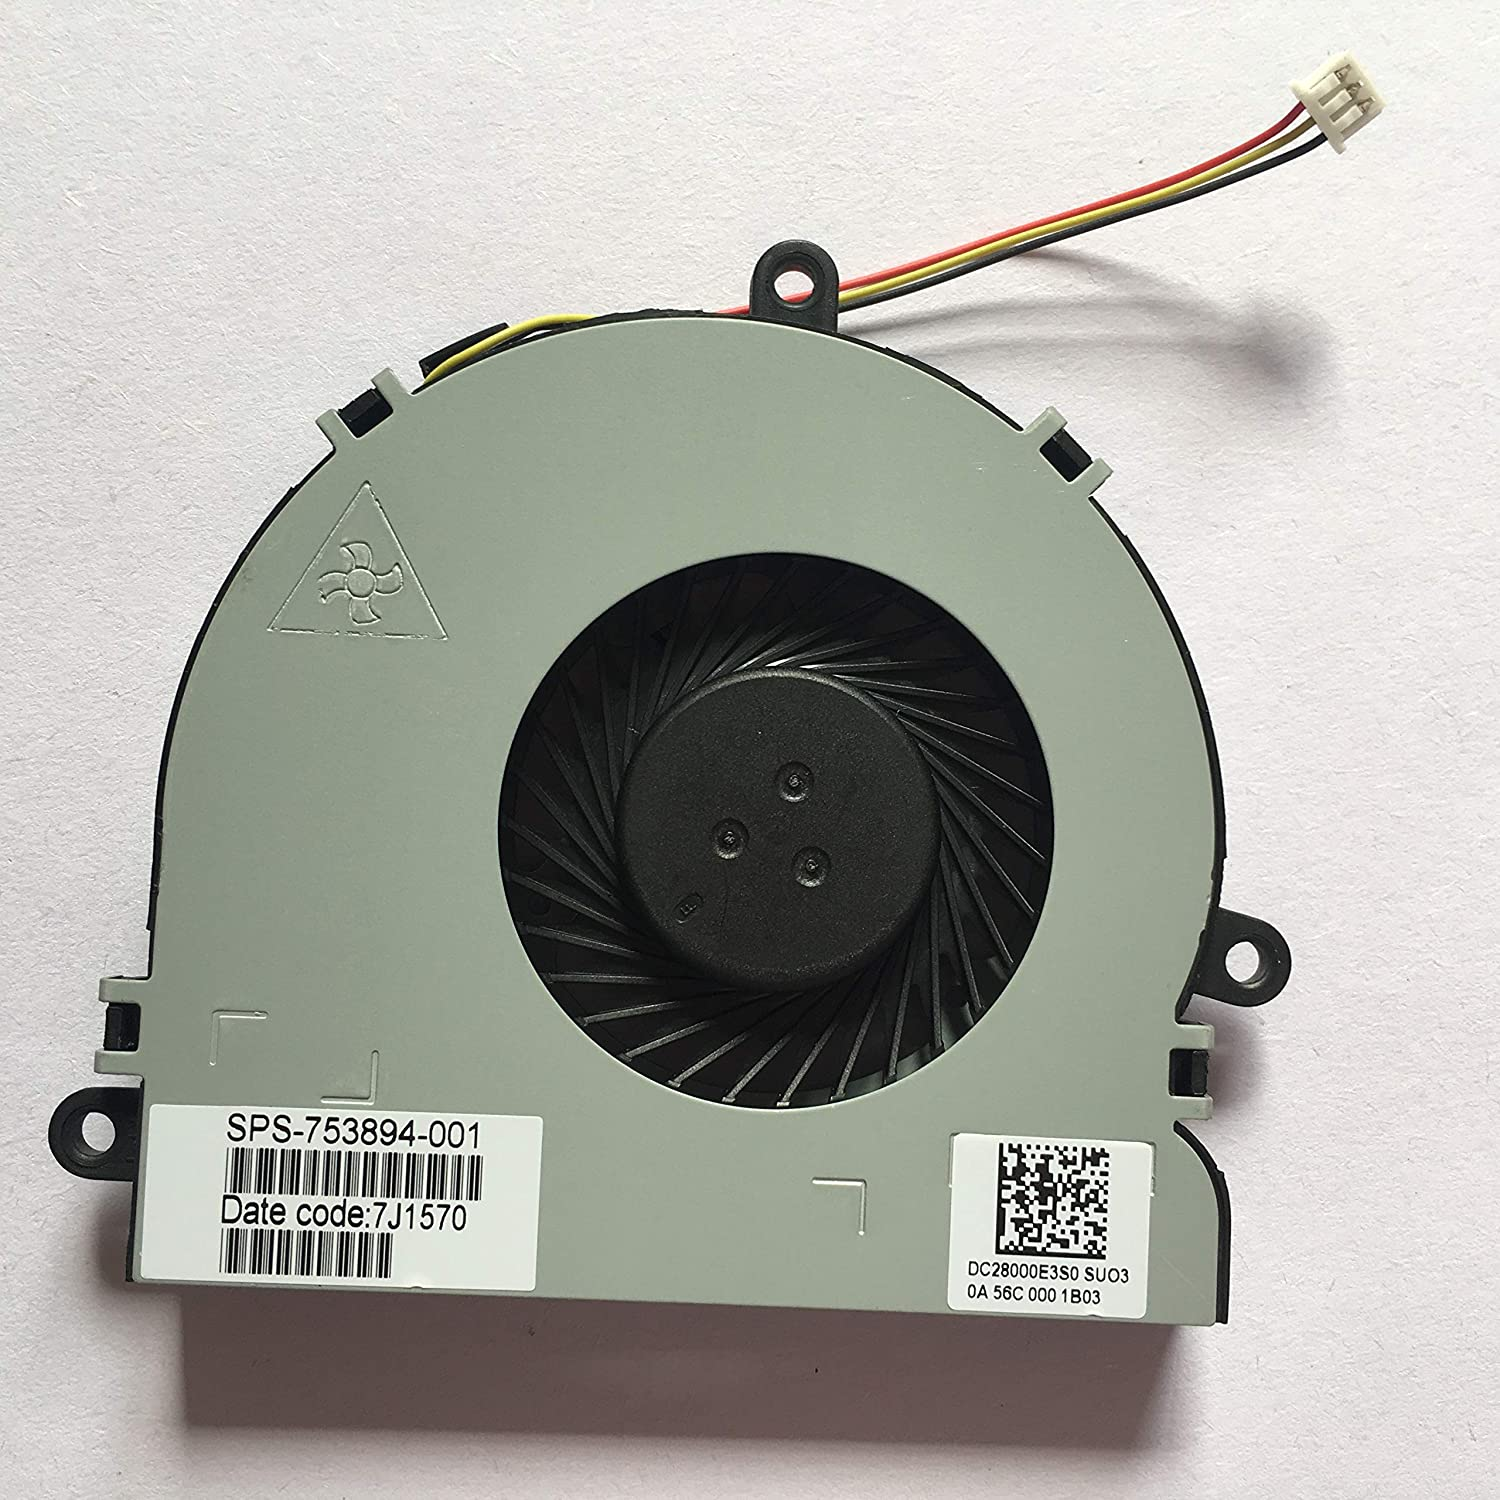 Z-one Fan Replacement for HP 14-G000 14-R000 14-R100 15-G000 15-G100 15-R000 15-R100 245-A4 245-E1 245-G3 246 G3 250 G3 255-A4 255-E1 255-G3 Series CPU Cooling Fan 753894-001 3-Wire 3-pin